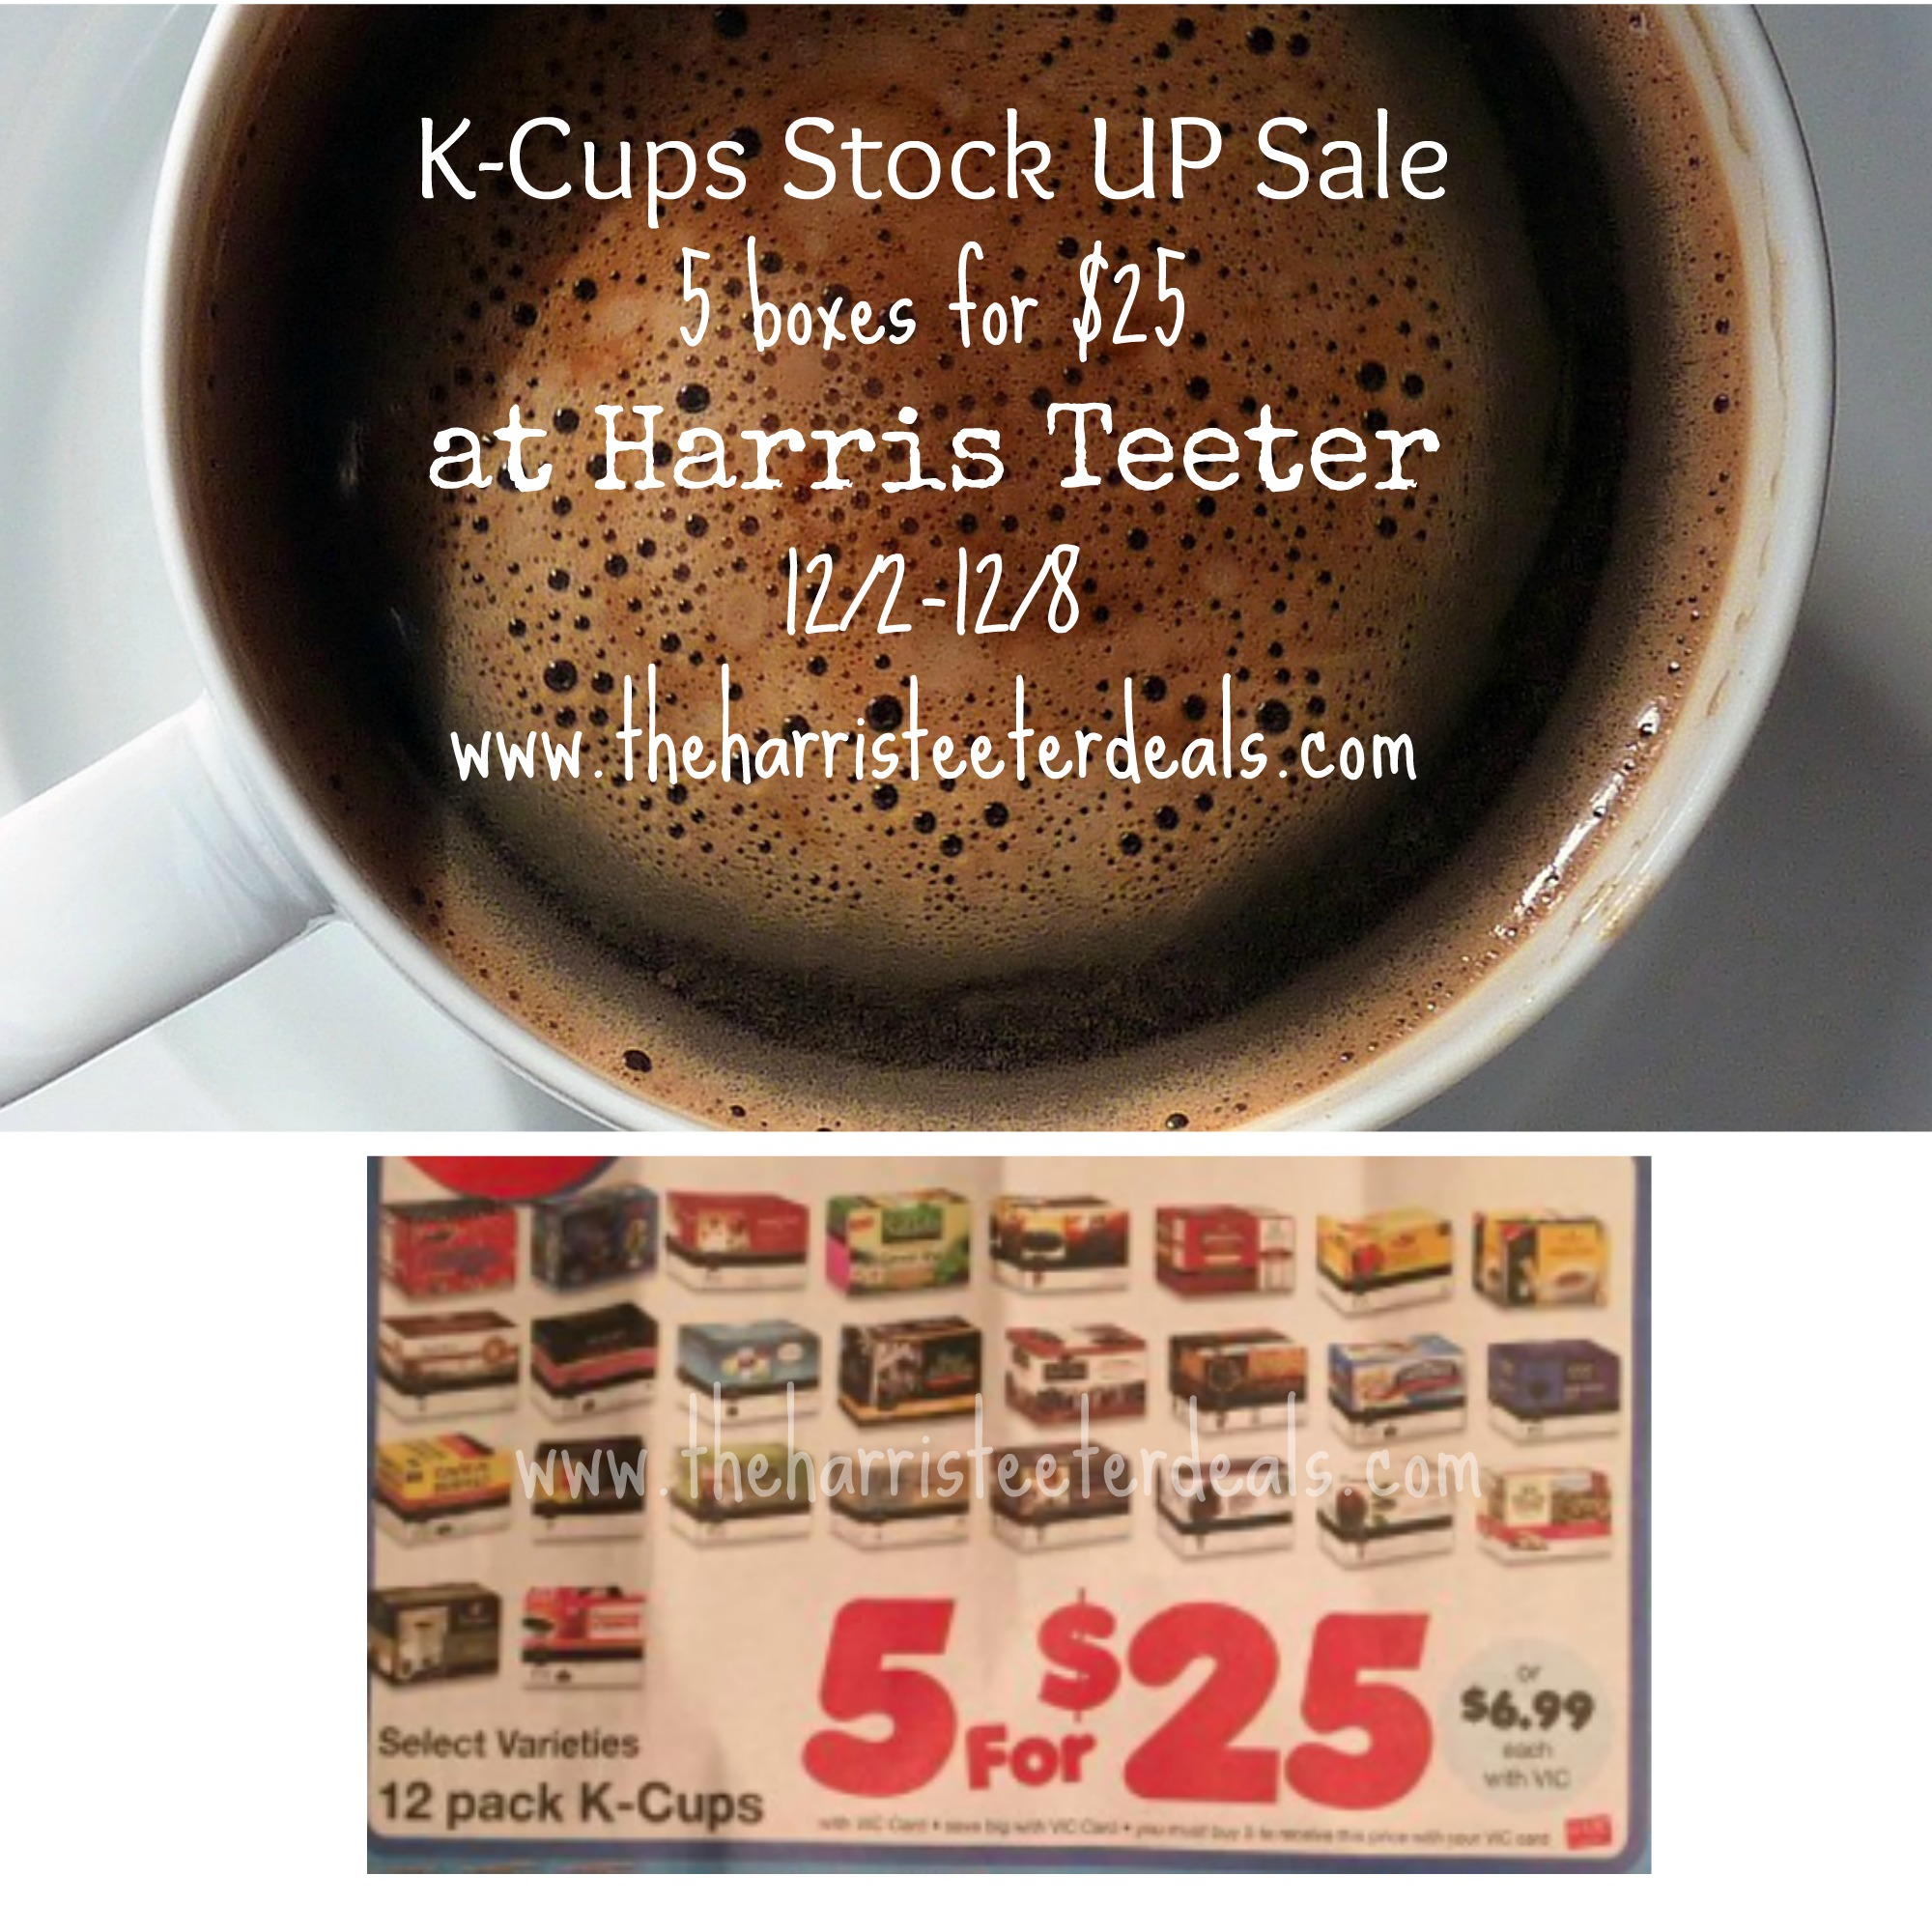 HOT! K-Cup Stock Up Sale is back $5 for $25! - The Harris Teeter Deals